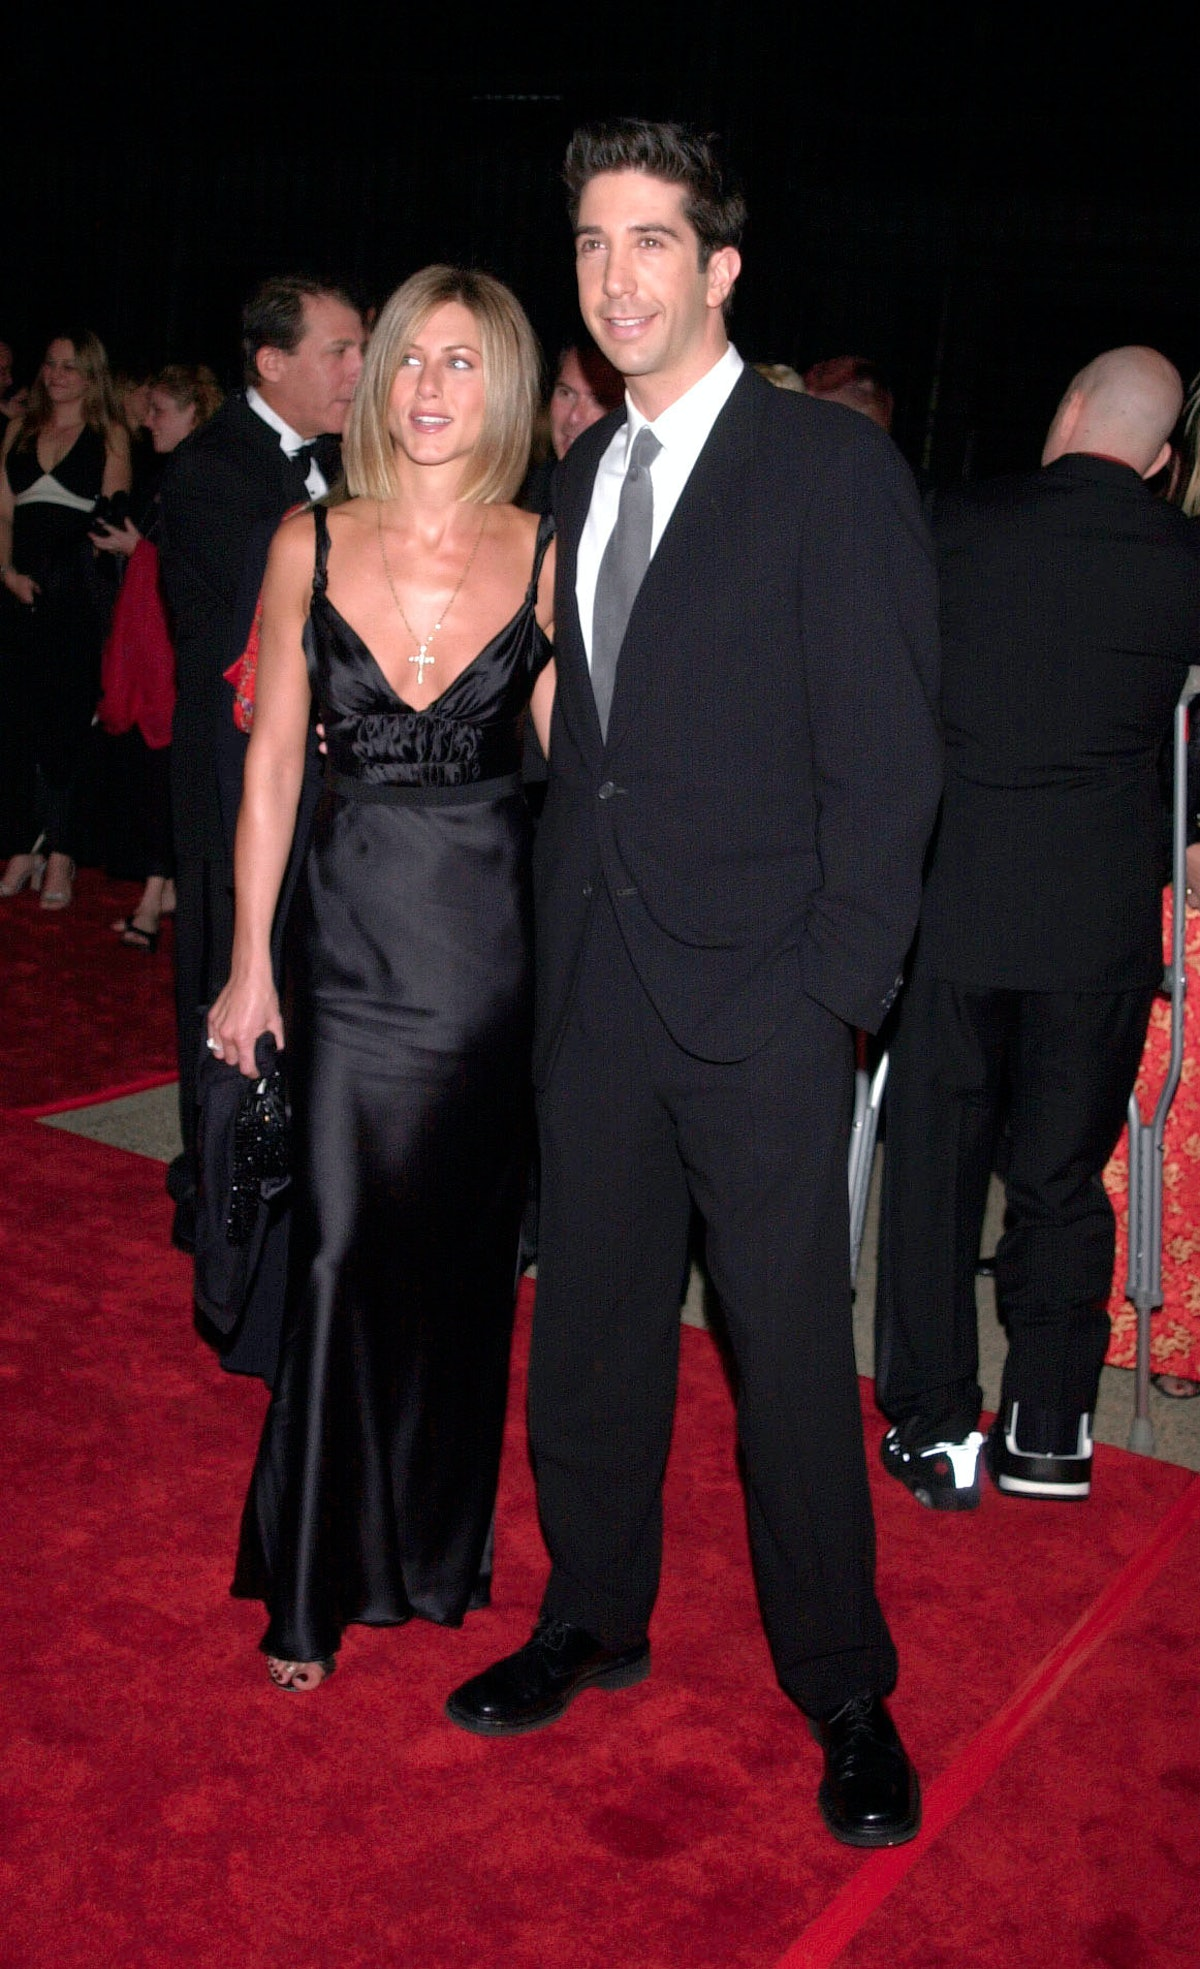 """David Schwimmer says there's """"no truth"""" to rumors that he and Jennifer Aniston are dating."""